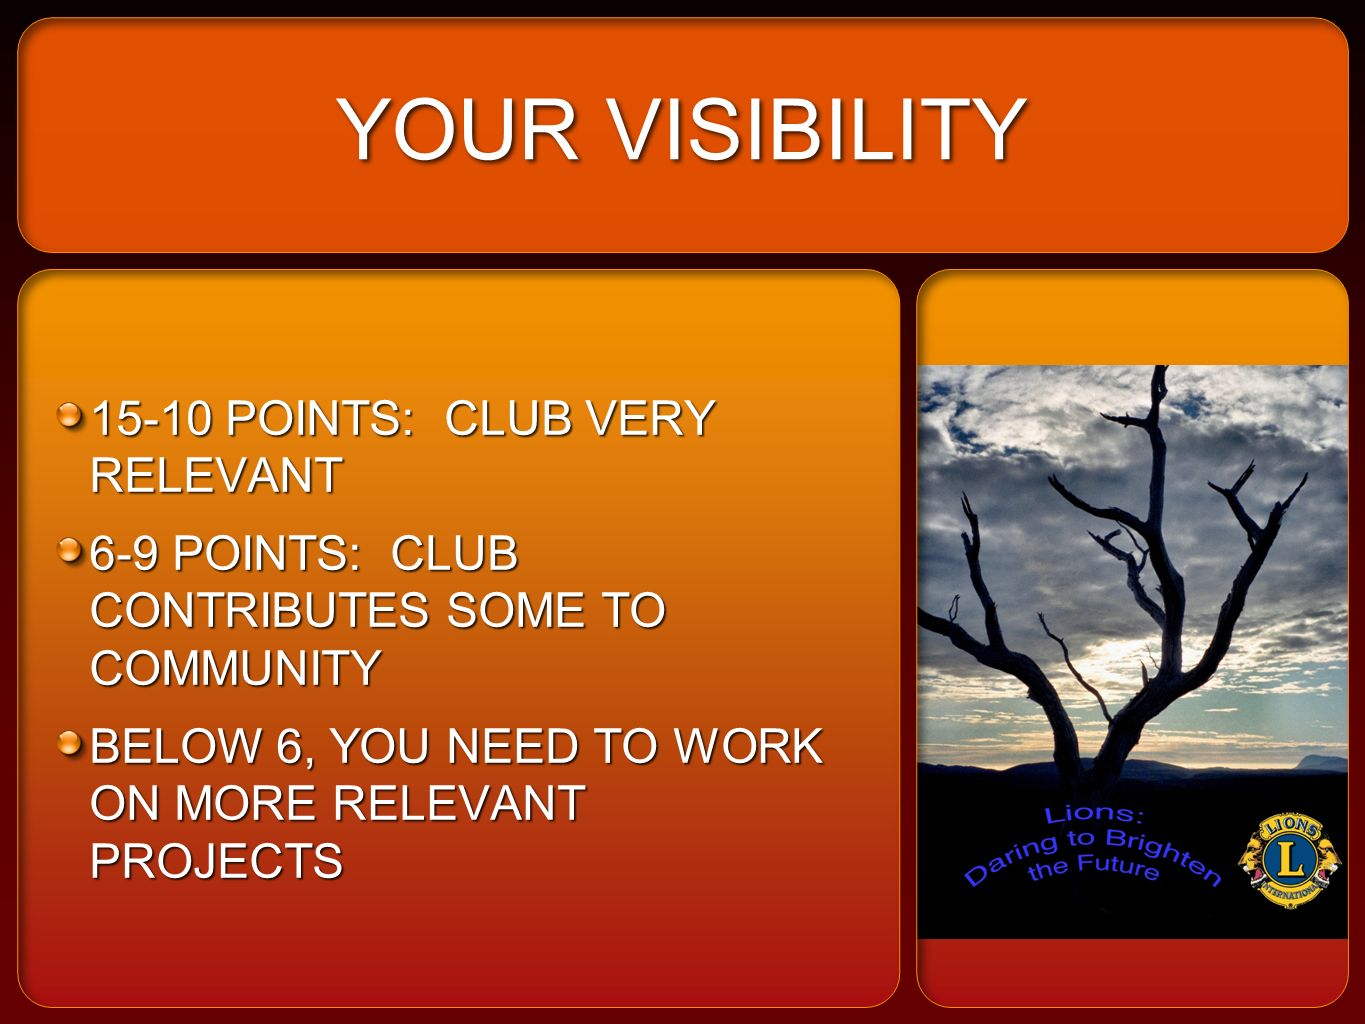 YOUR VISIBILITY 15-10 POINTS: CLUB VERY RELEVANT 6-9 POINTS: CLUB CONTRIBUTES SOME TO COMMUNITY BELOW 6, YOU NEED TO WORK ON MORE RELEVANT PROJECTS 15